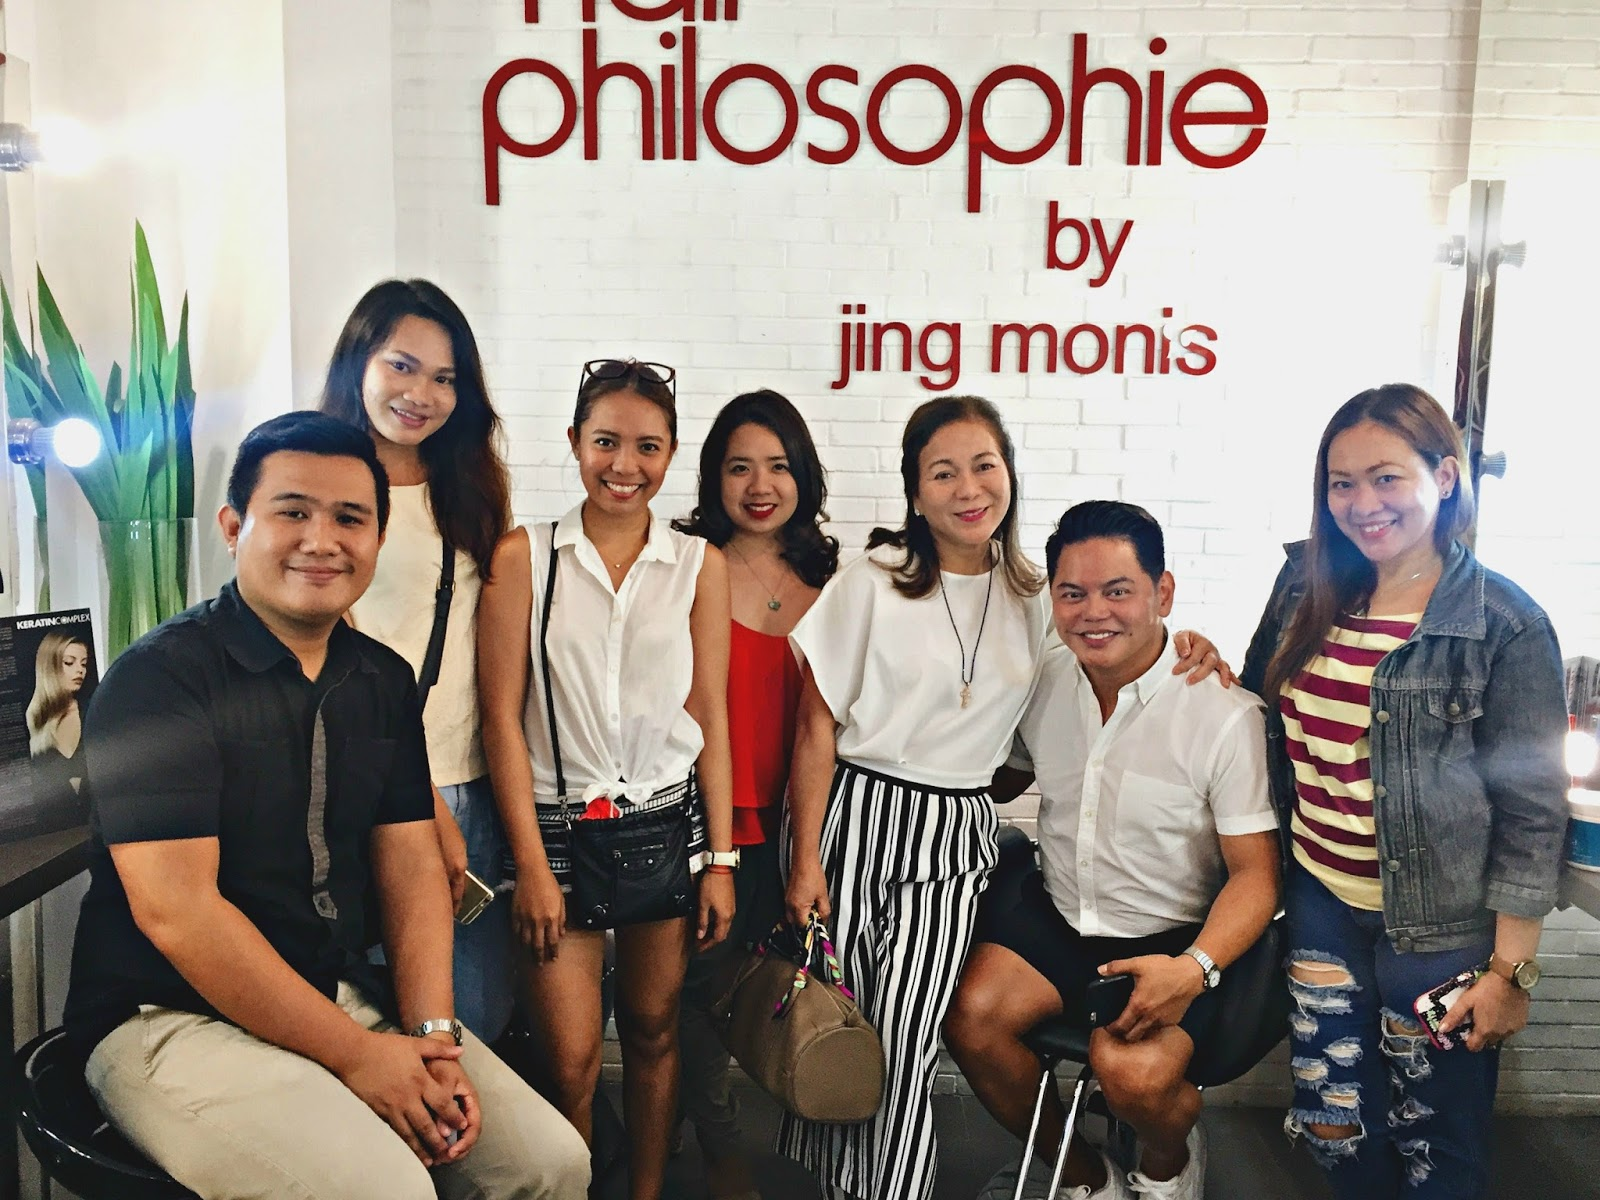 Hair Philosophie by Jing Monis: A Press Delight